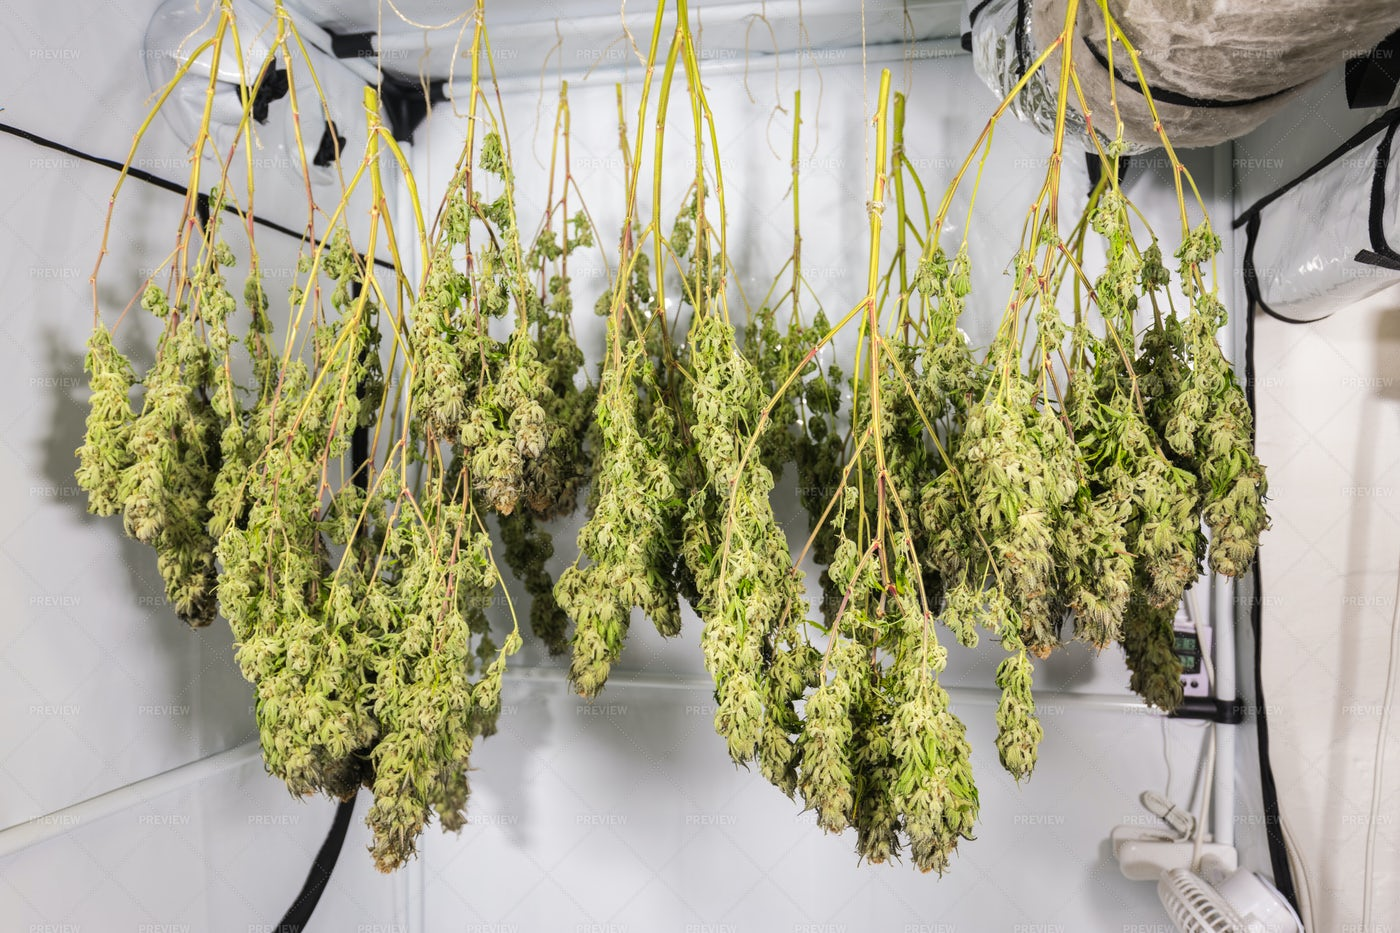 Drying Cannabis In Tent: Stock Photos